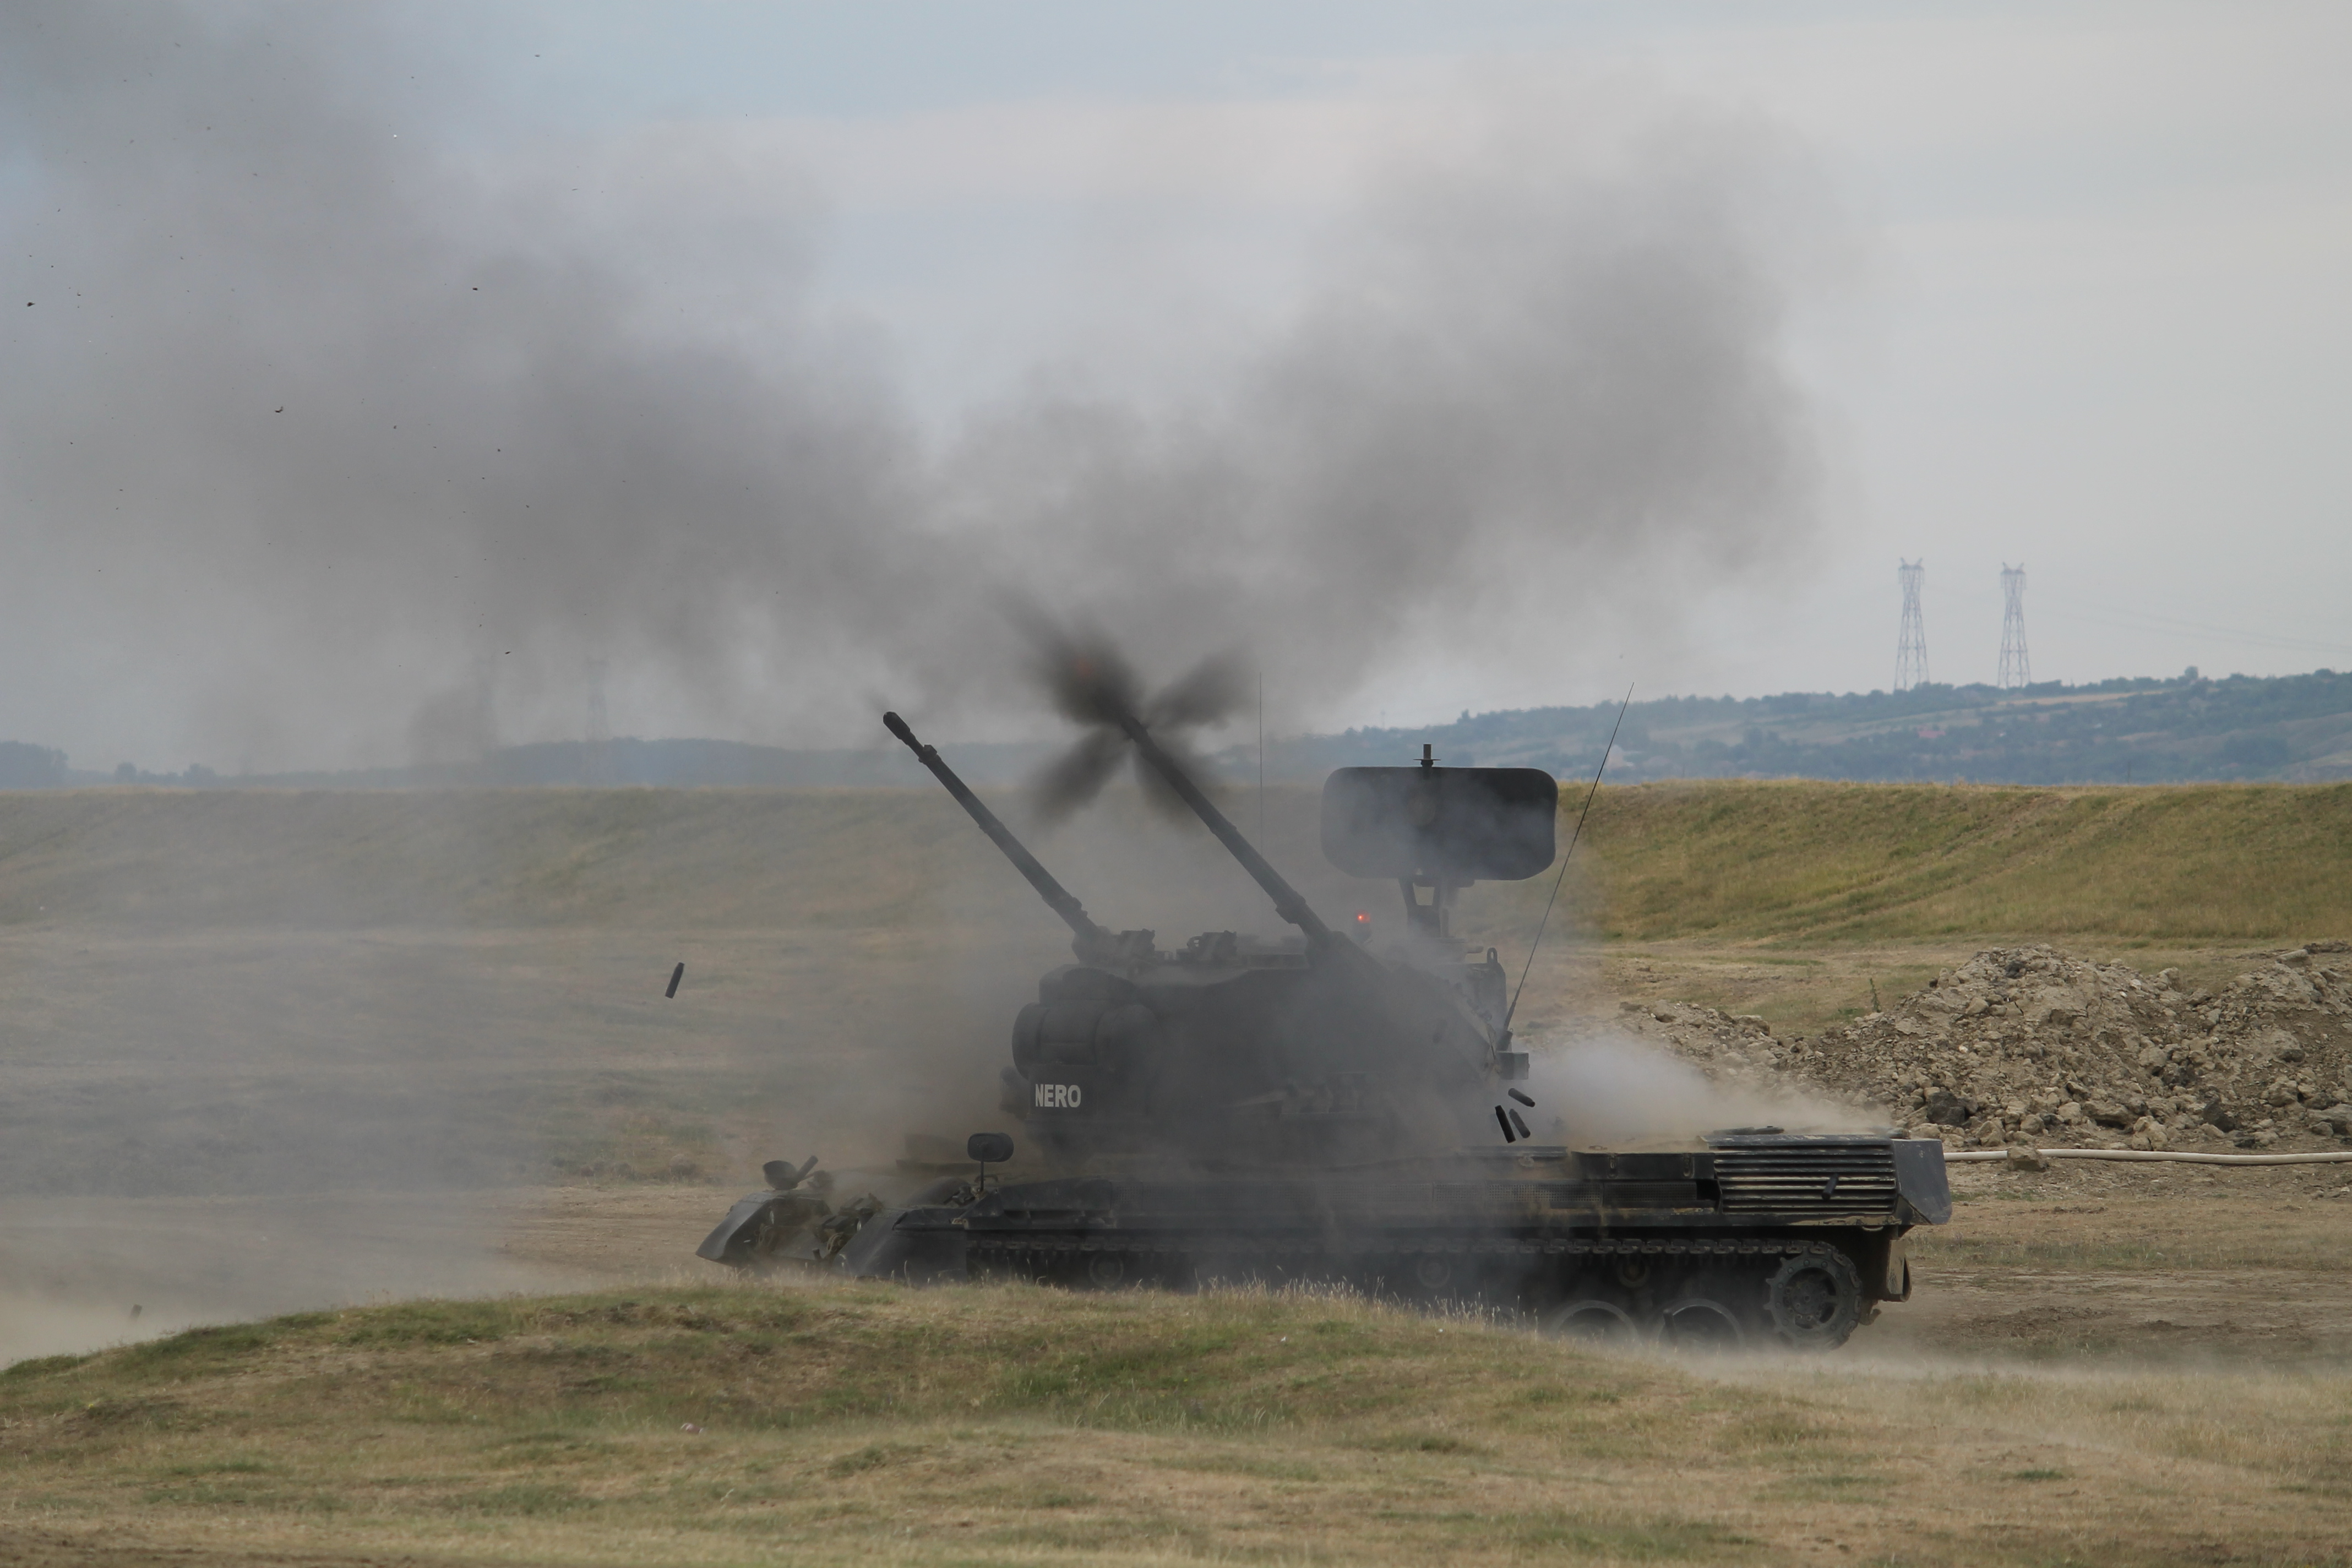 A Gepard short-range air defense system fires on the banks of the Danube. Romania was provided systems from Germany and now it's a critical system as countries in the region seek to deter Russian aggression. Lt. Gen. Ben Hodges, U.S. Army Europe commander, has lamented the lack of SHORAD capability in the U.S. Army. To shore up the gap in Europe, some National Guard Avenger units will deploy on a rotational basis starting this fall. Countries like Romania with resident SHORAD capability also help to fill that gap. (Jen Judson/Staff)